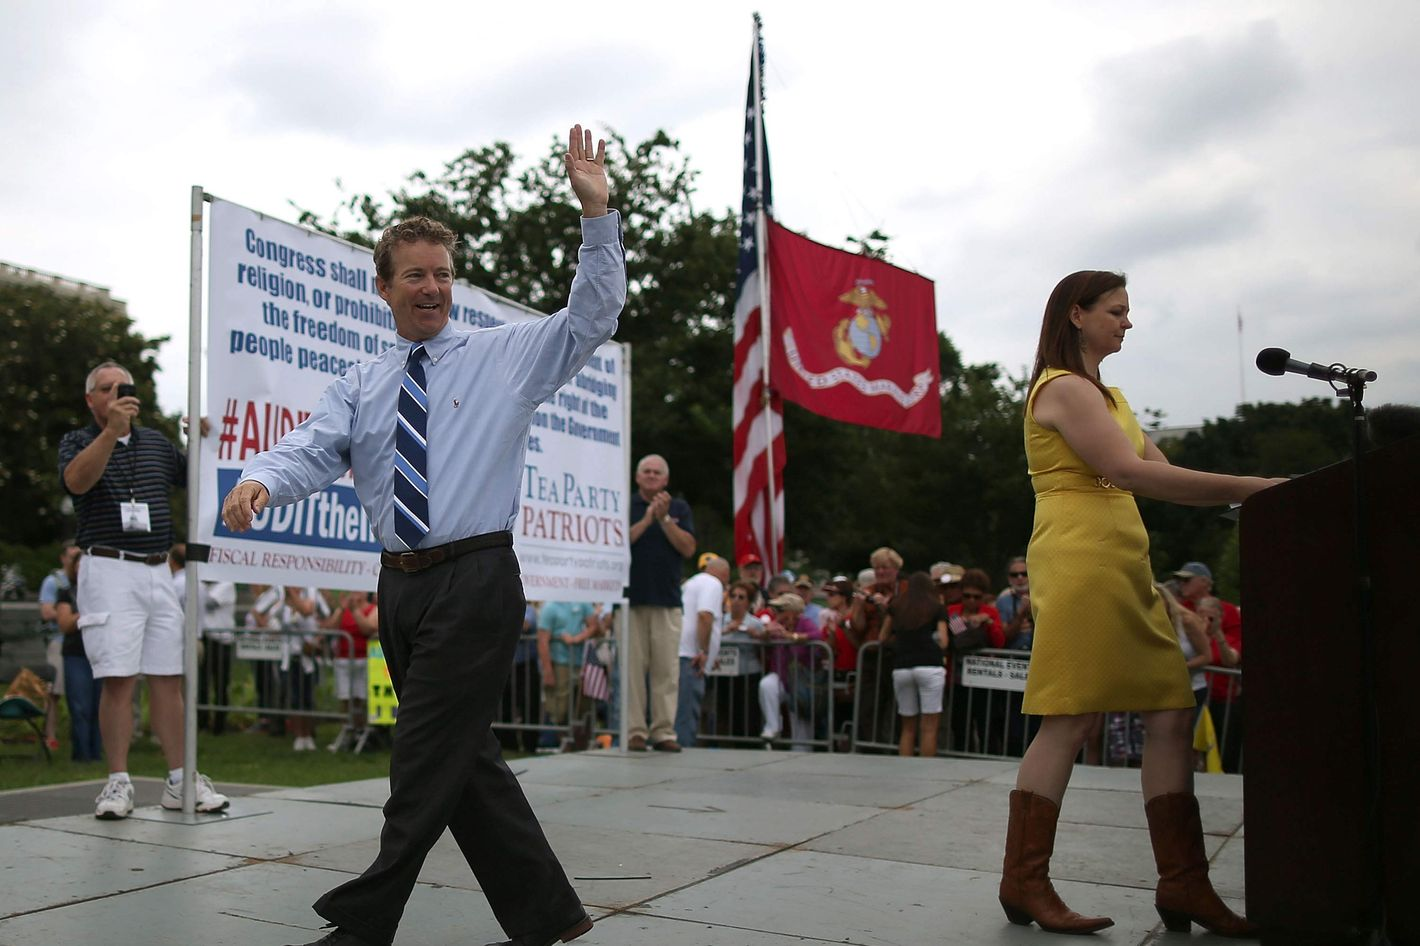 Sen. Rand Paul (R-KY) (L) waves to the crowd while Jenny Beth Martin (R) introduces the next speaker during a Tea Party rally in front of the U.S. Capitol, June 17, 2013 in Washington, DC. The group Tea Party Patriots hosted the rally to protest against the Internal Revenue Service's targeting Tea Party and grassroots organizations for harassment.